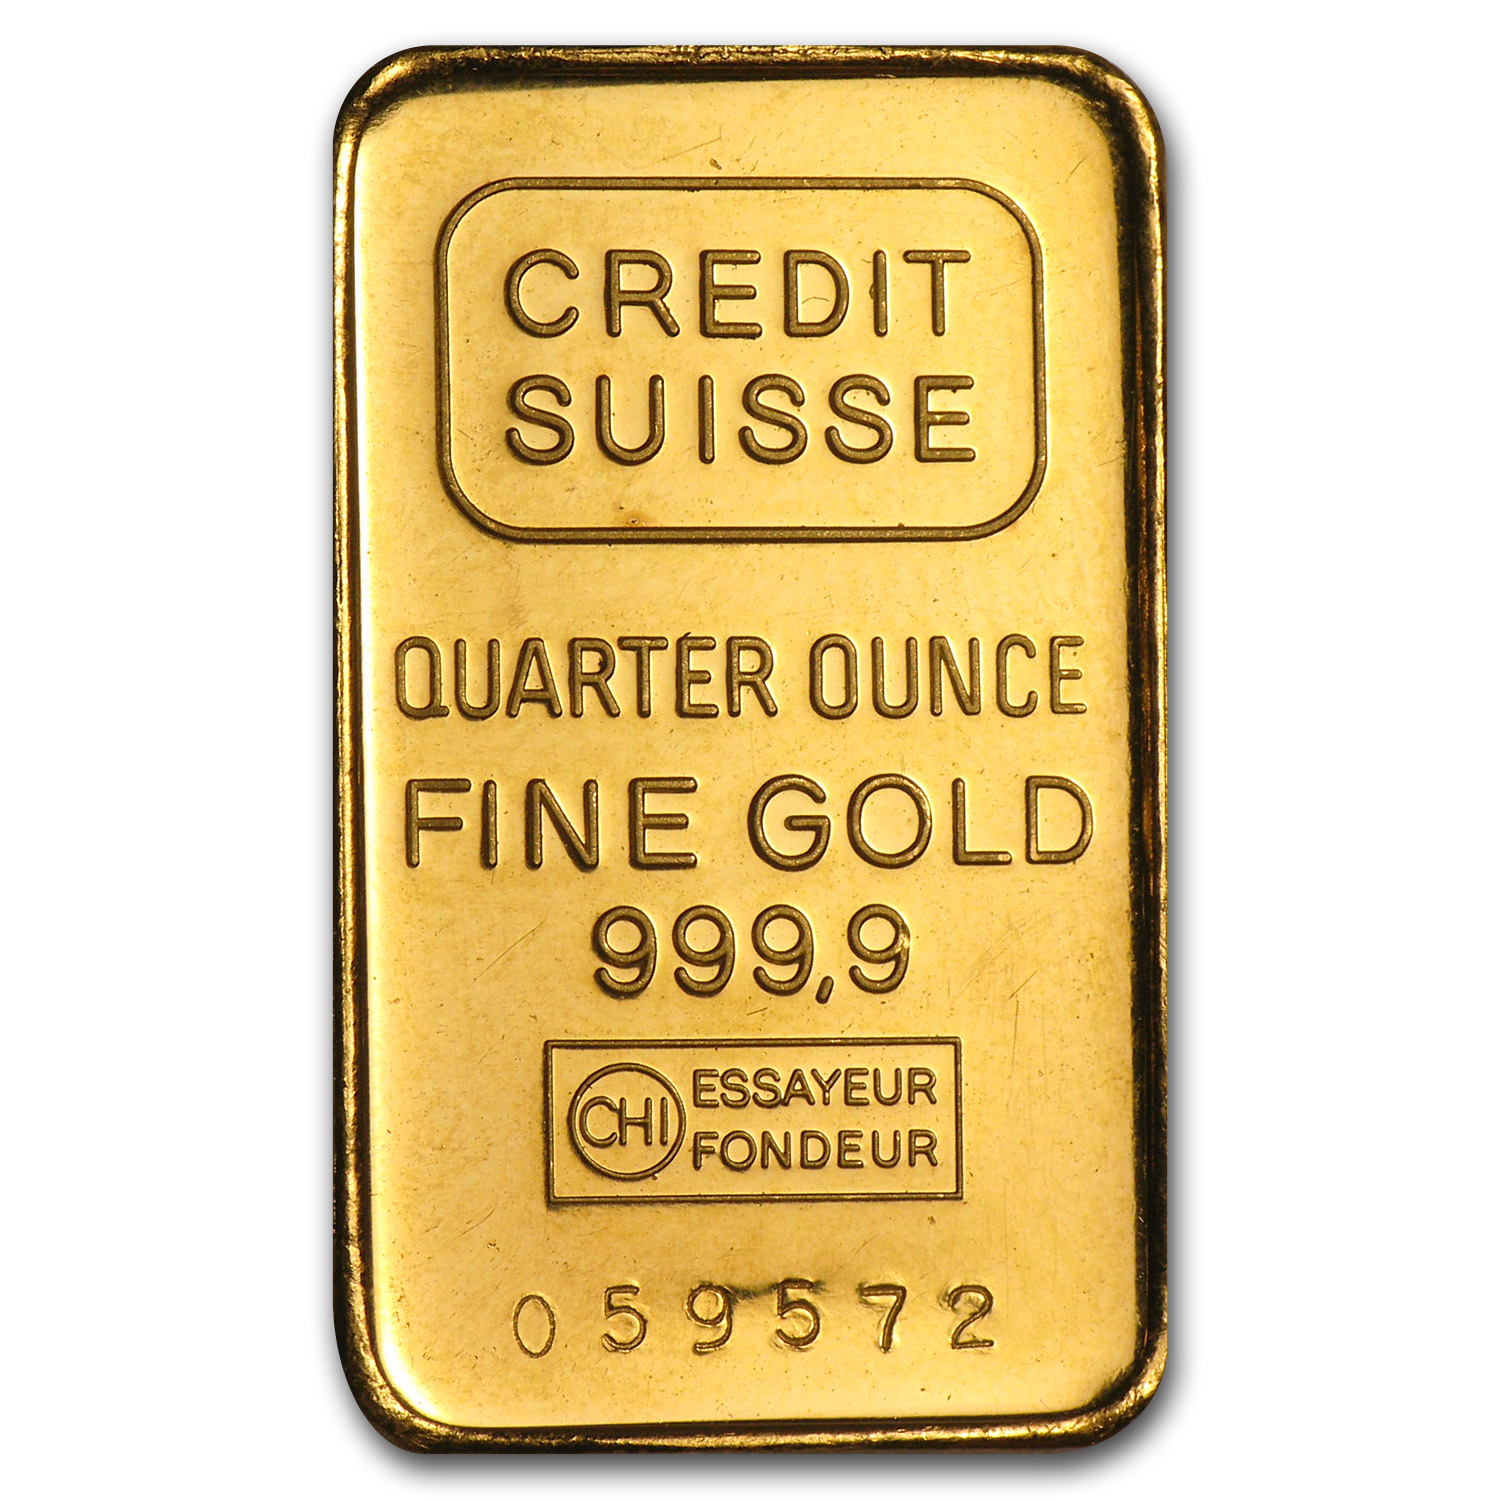 1/4 oz Gold Bars - Secondary Market